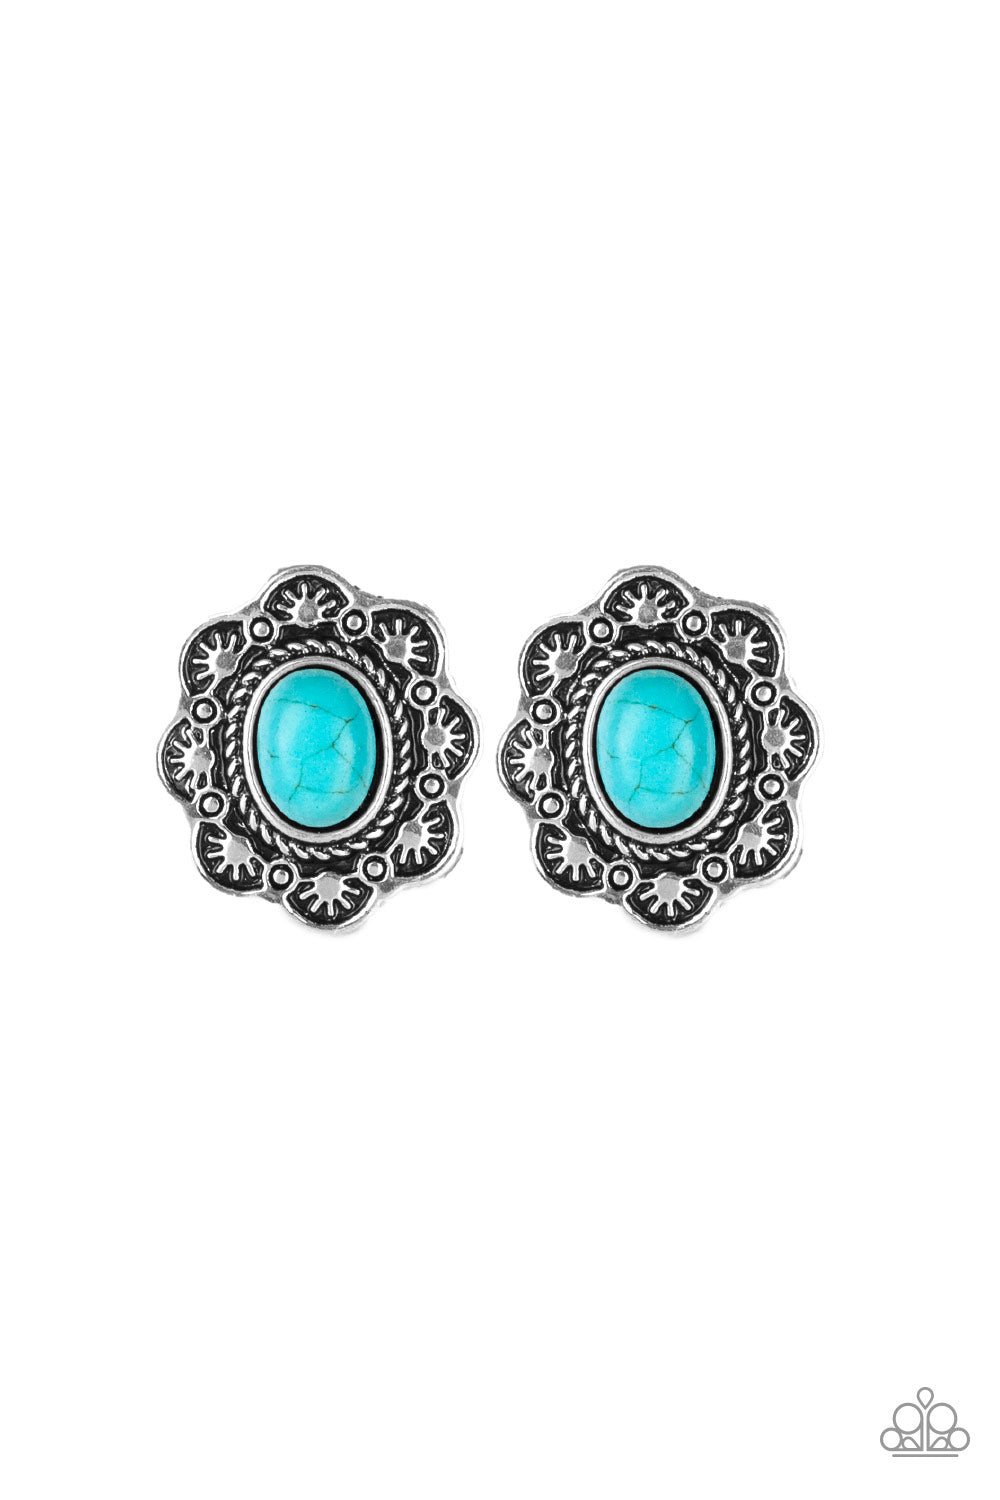 Paparazzi Springtime Deserts Silver Post Earrings